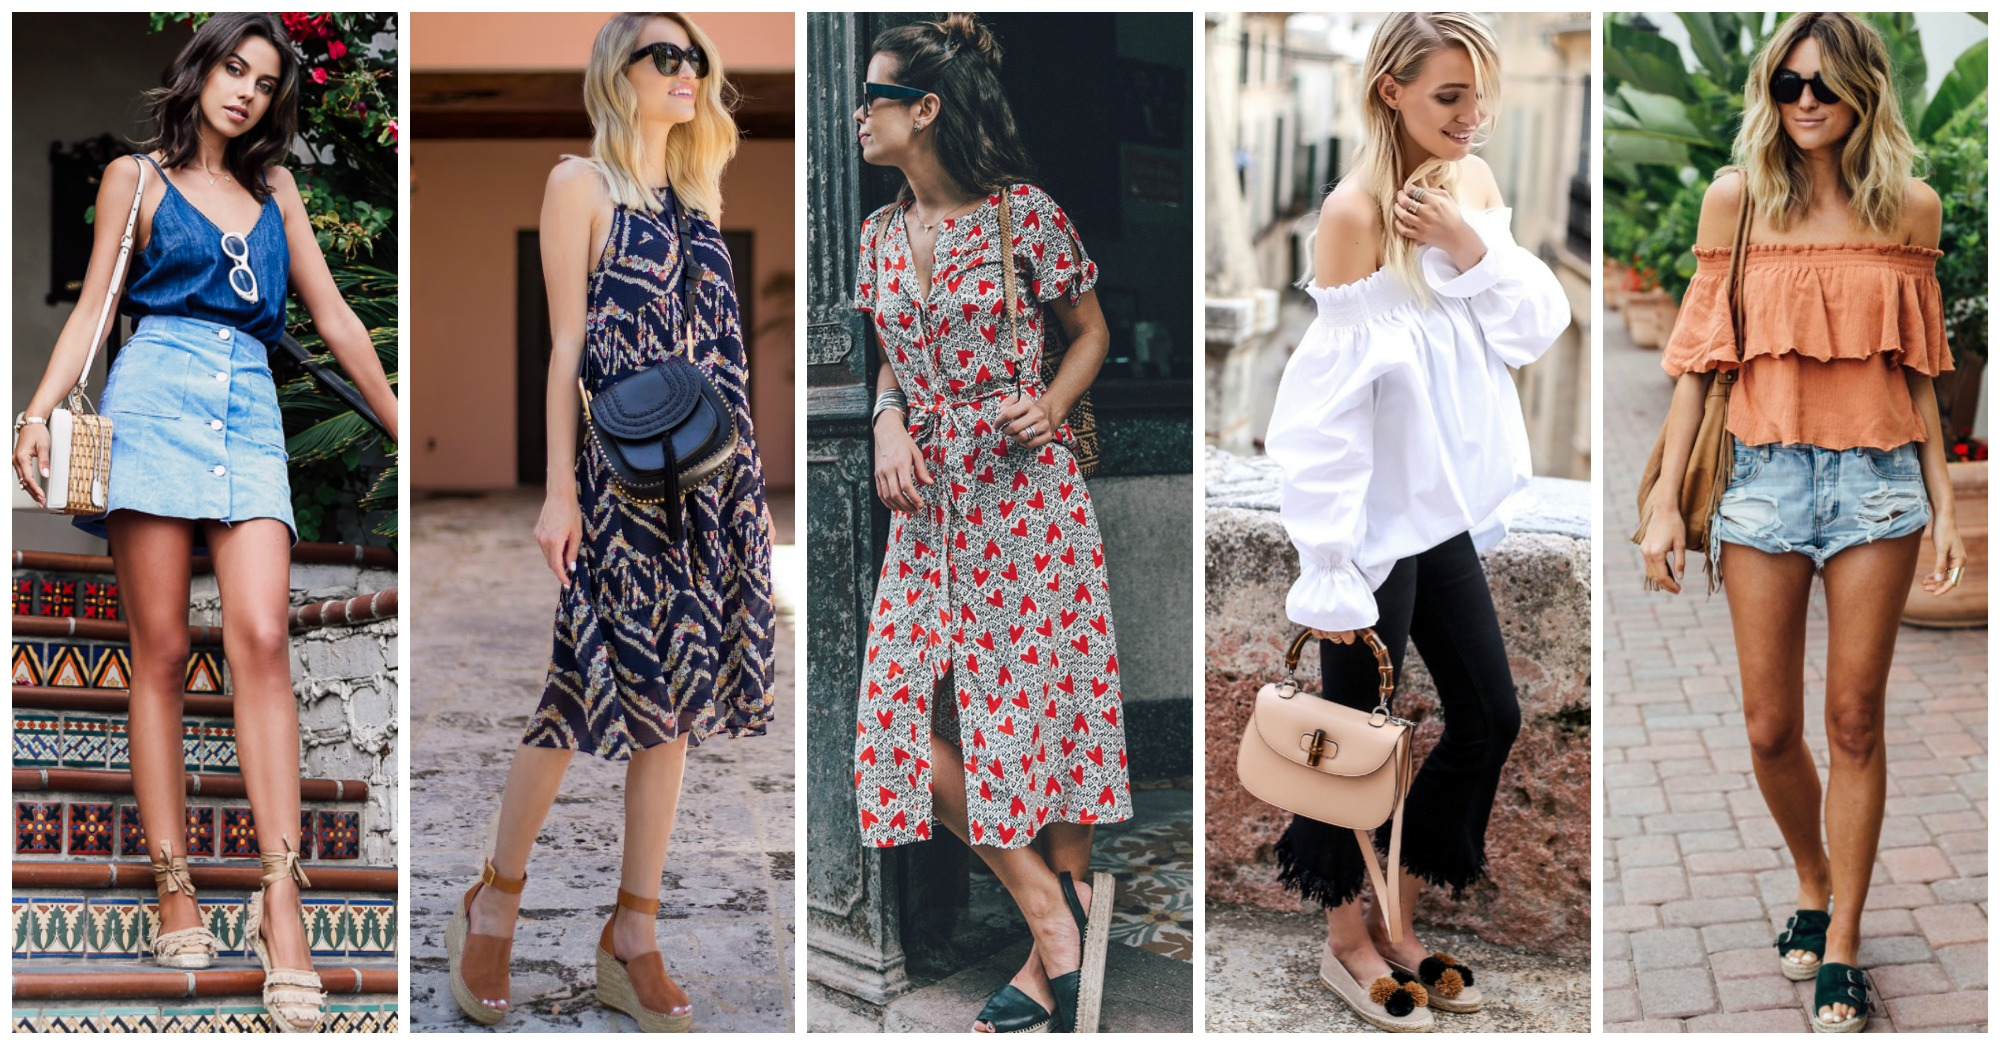 15 Chic Summer Outfits with Espadrilles to Copy Right Now